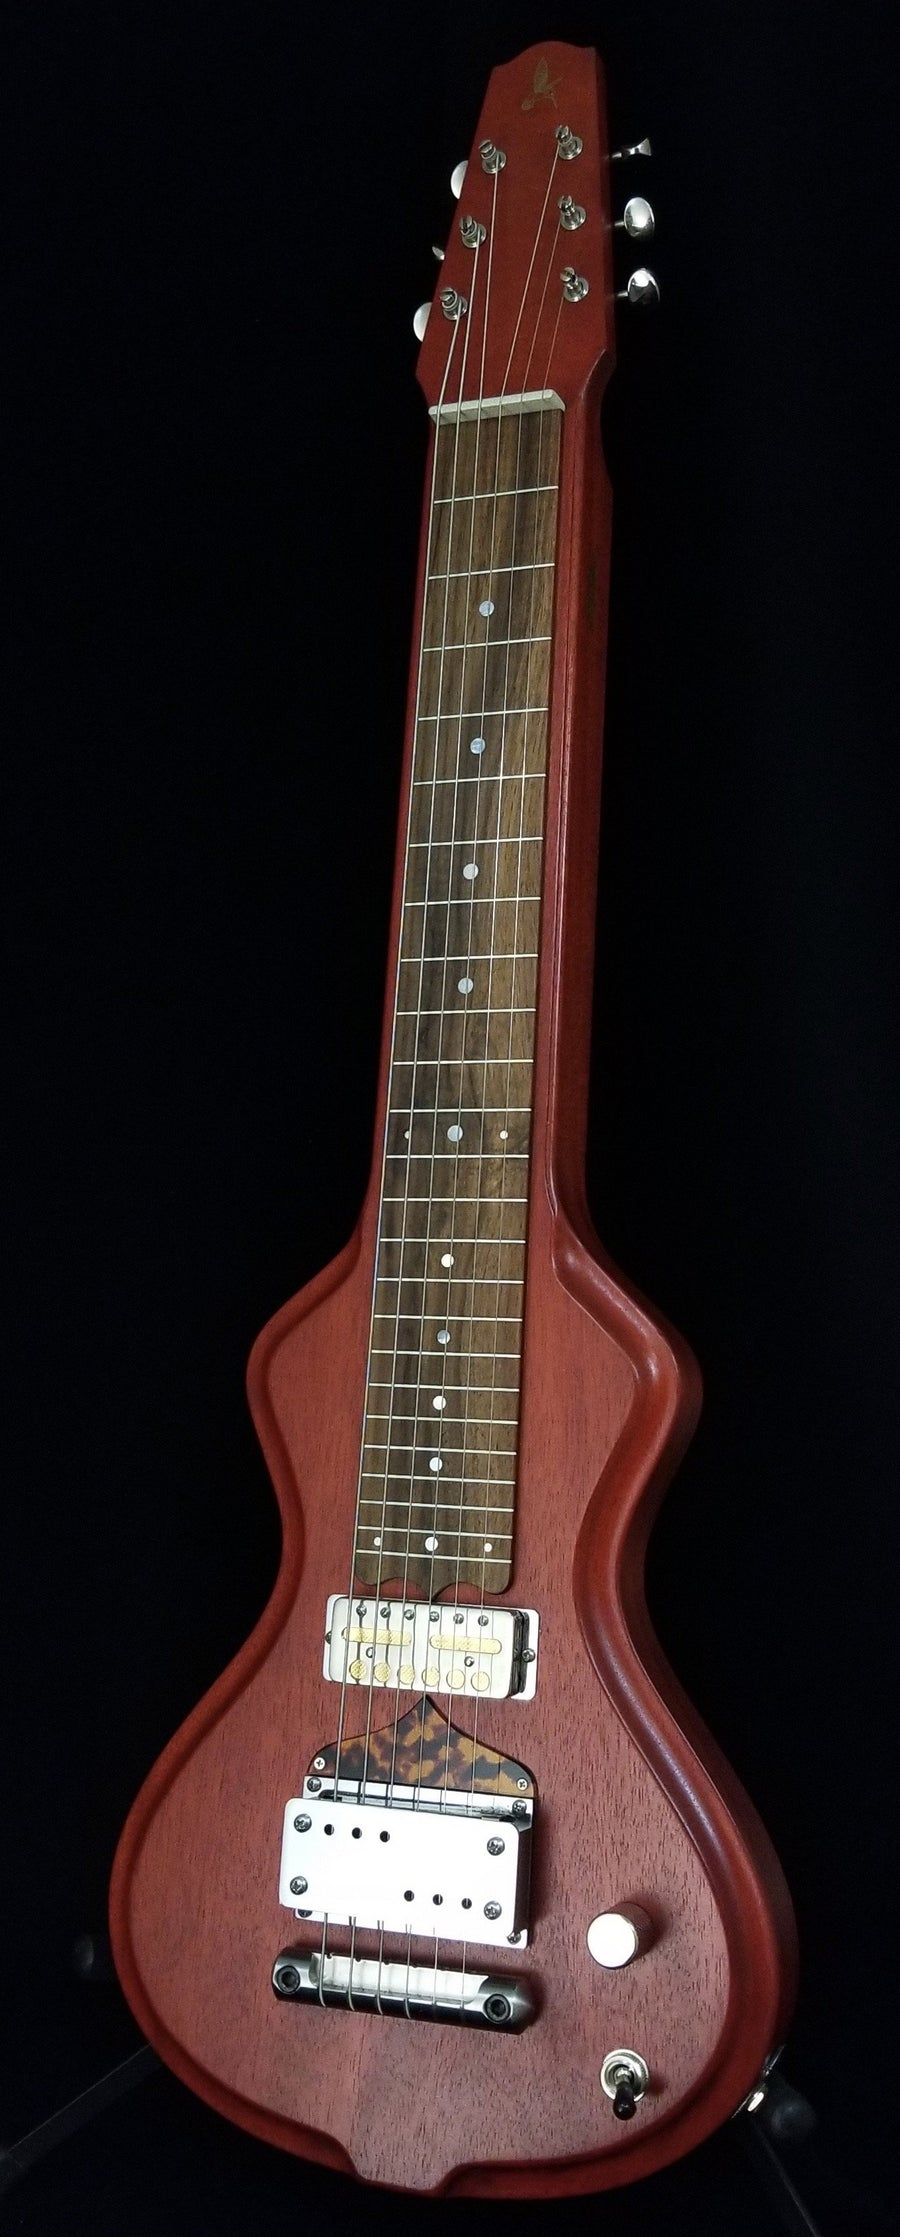 SOLD 2018 Electro Hawaiian Short Scale 6-String Lap Steel Played by Greg Leisz, #1068